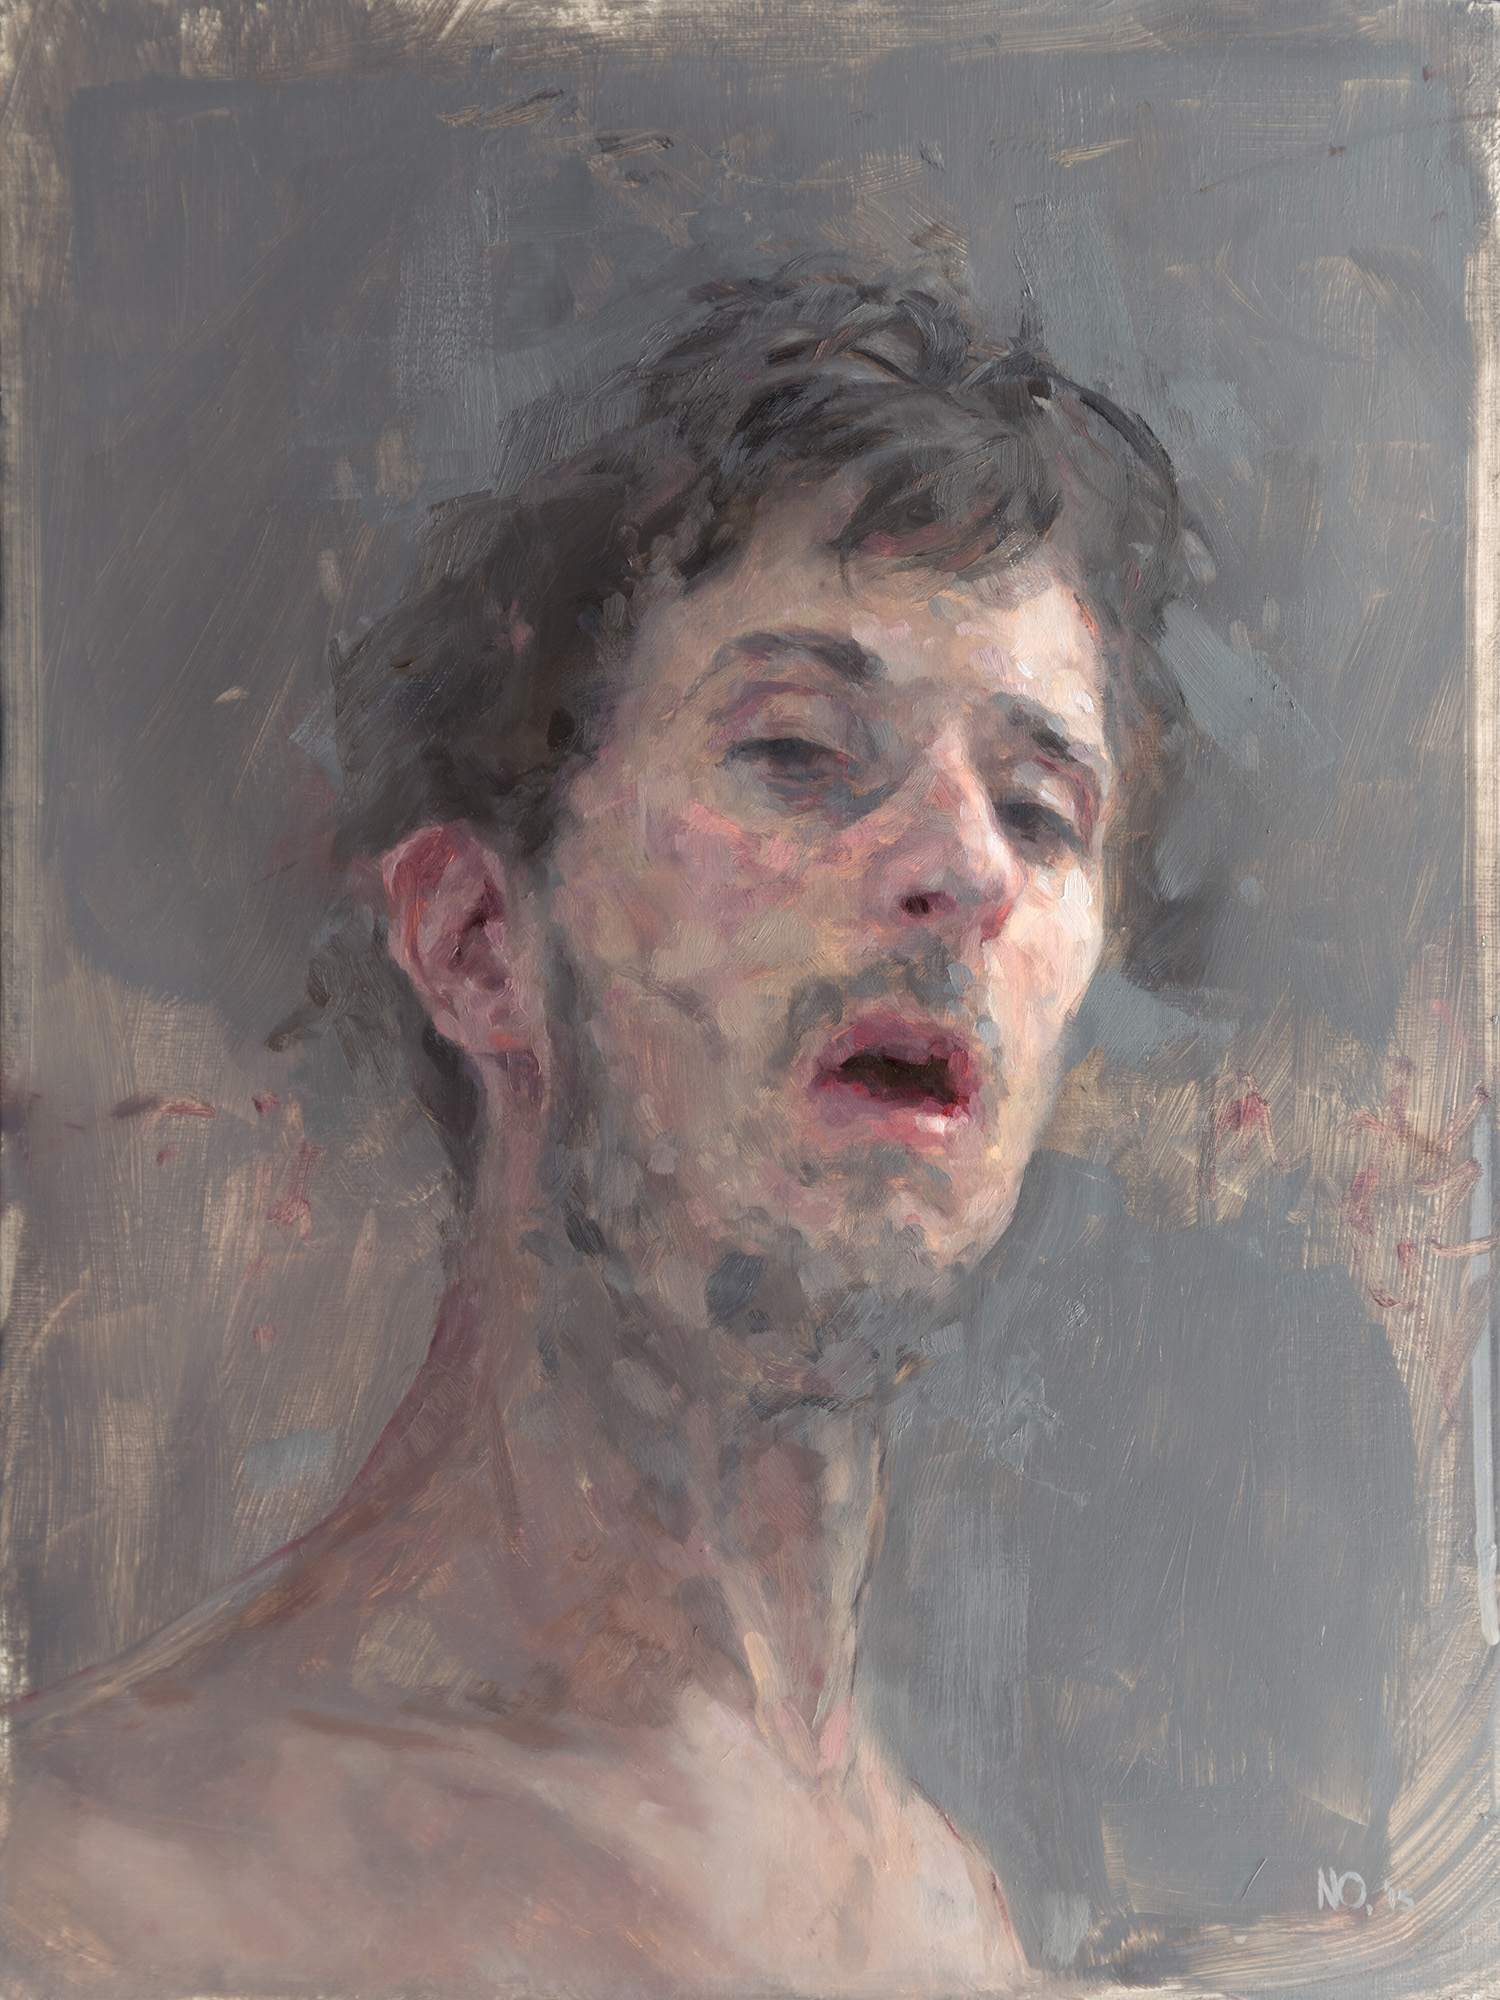 Gunked Up, oil on Canvas, 40 x 30 cm, 2015